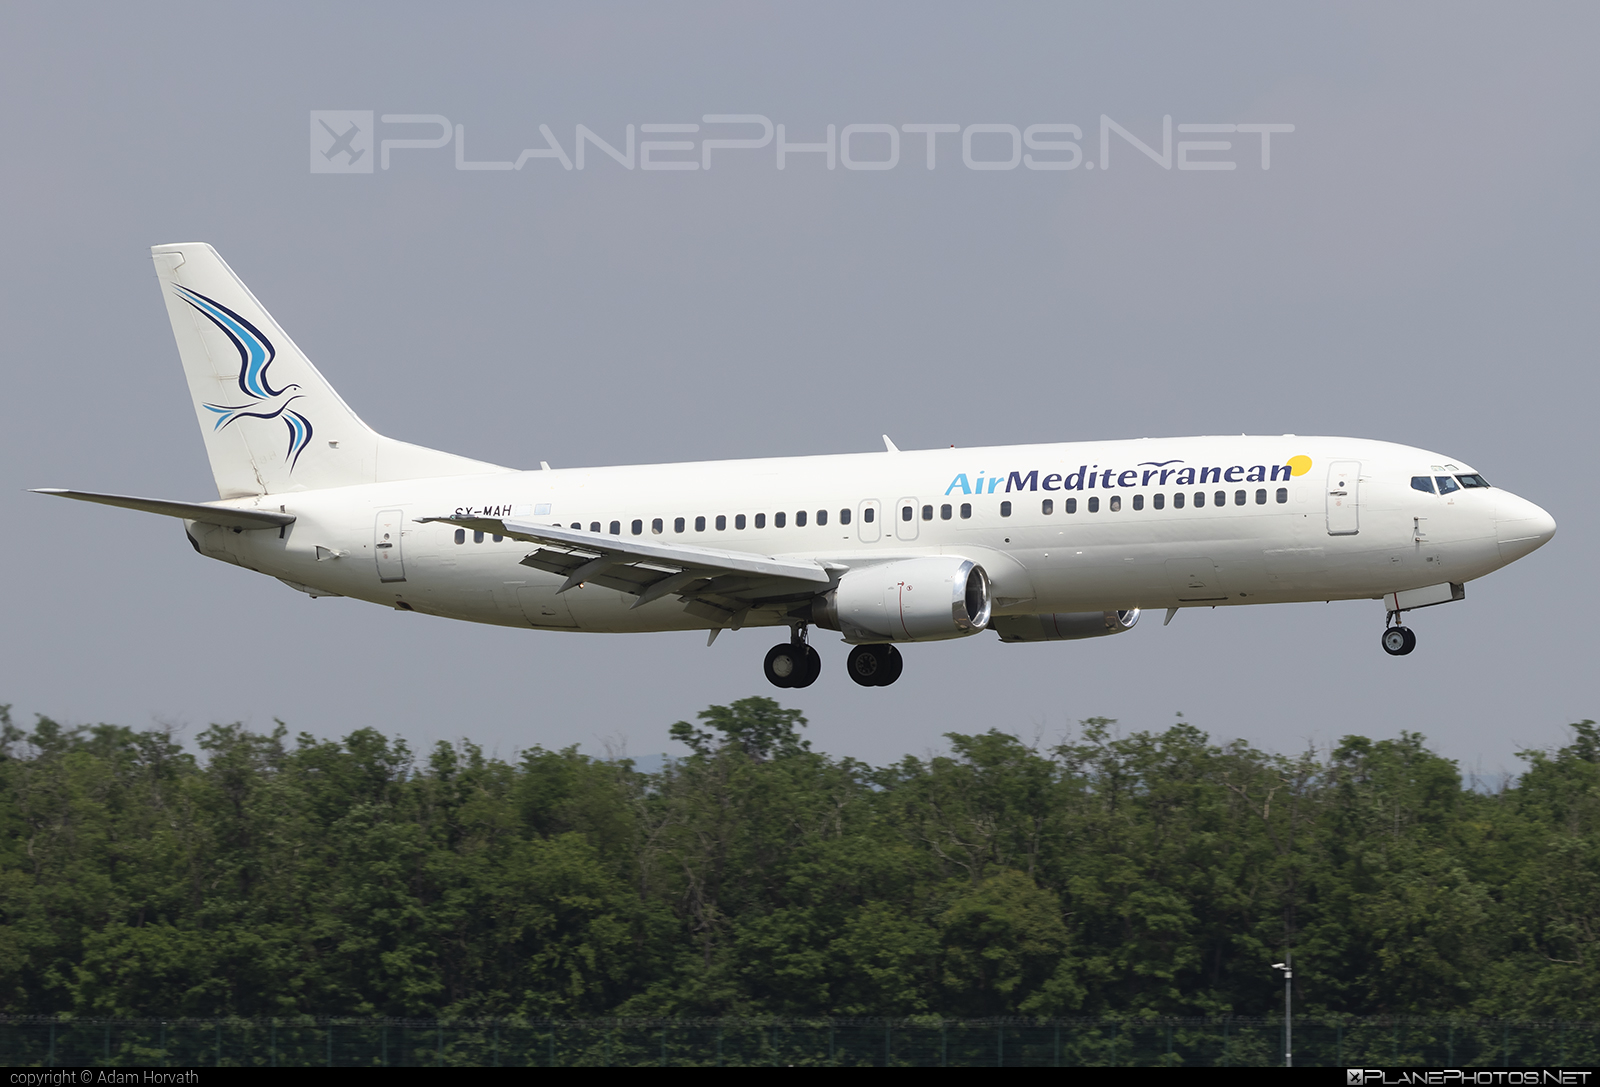 Boeing 737-400 - SX-MAH operated by Air Mediterranean #b737 #boeing #boeing737